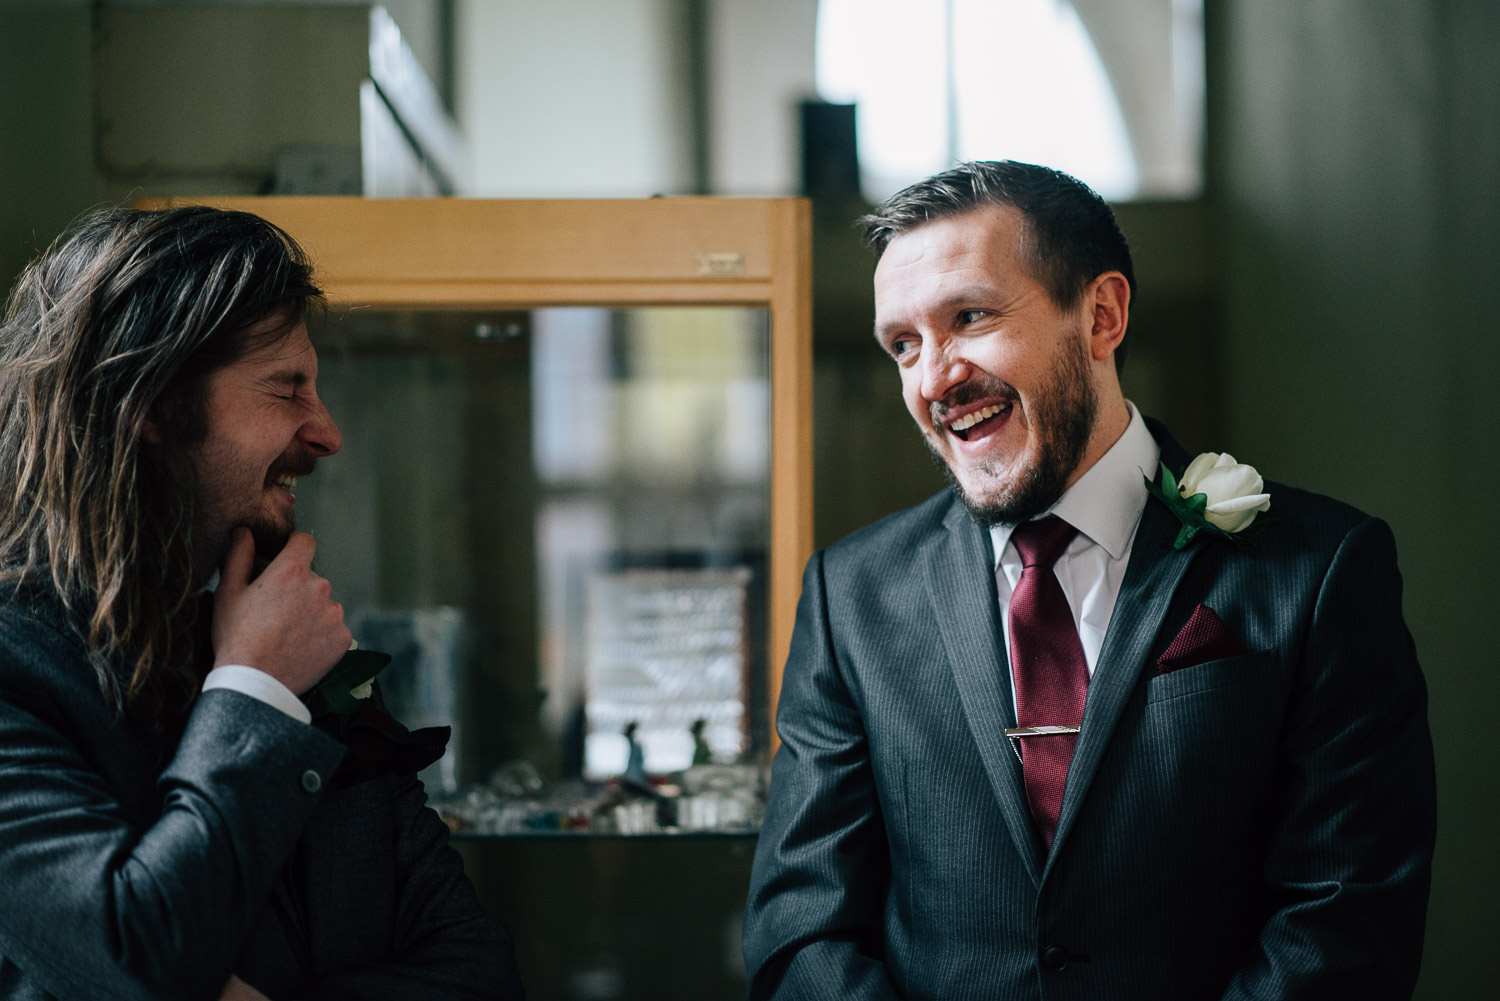 ushers laughing at ceremony in bradford on avon by bath wedding photographer the shannons photography